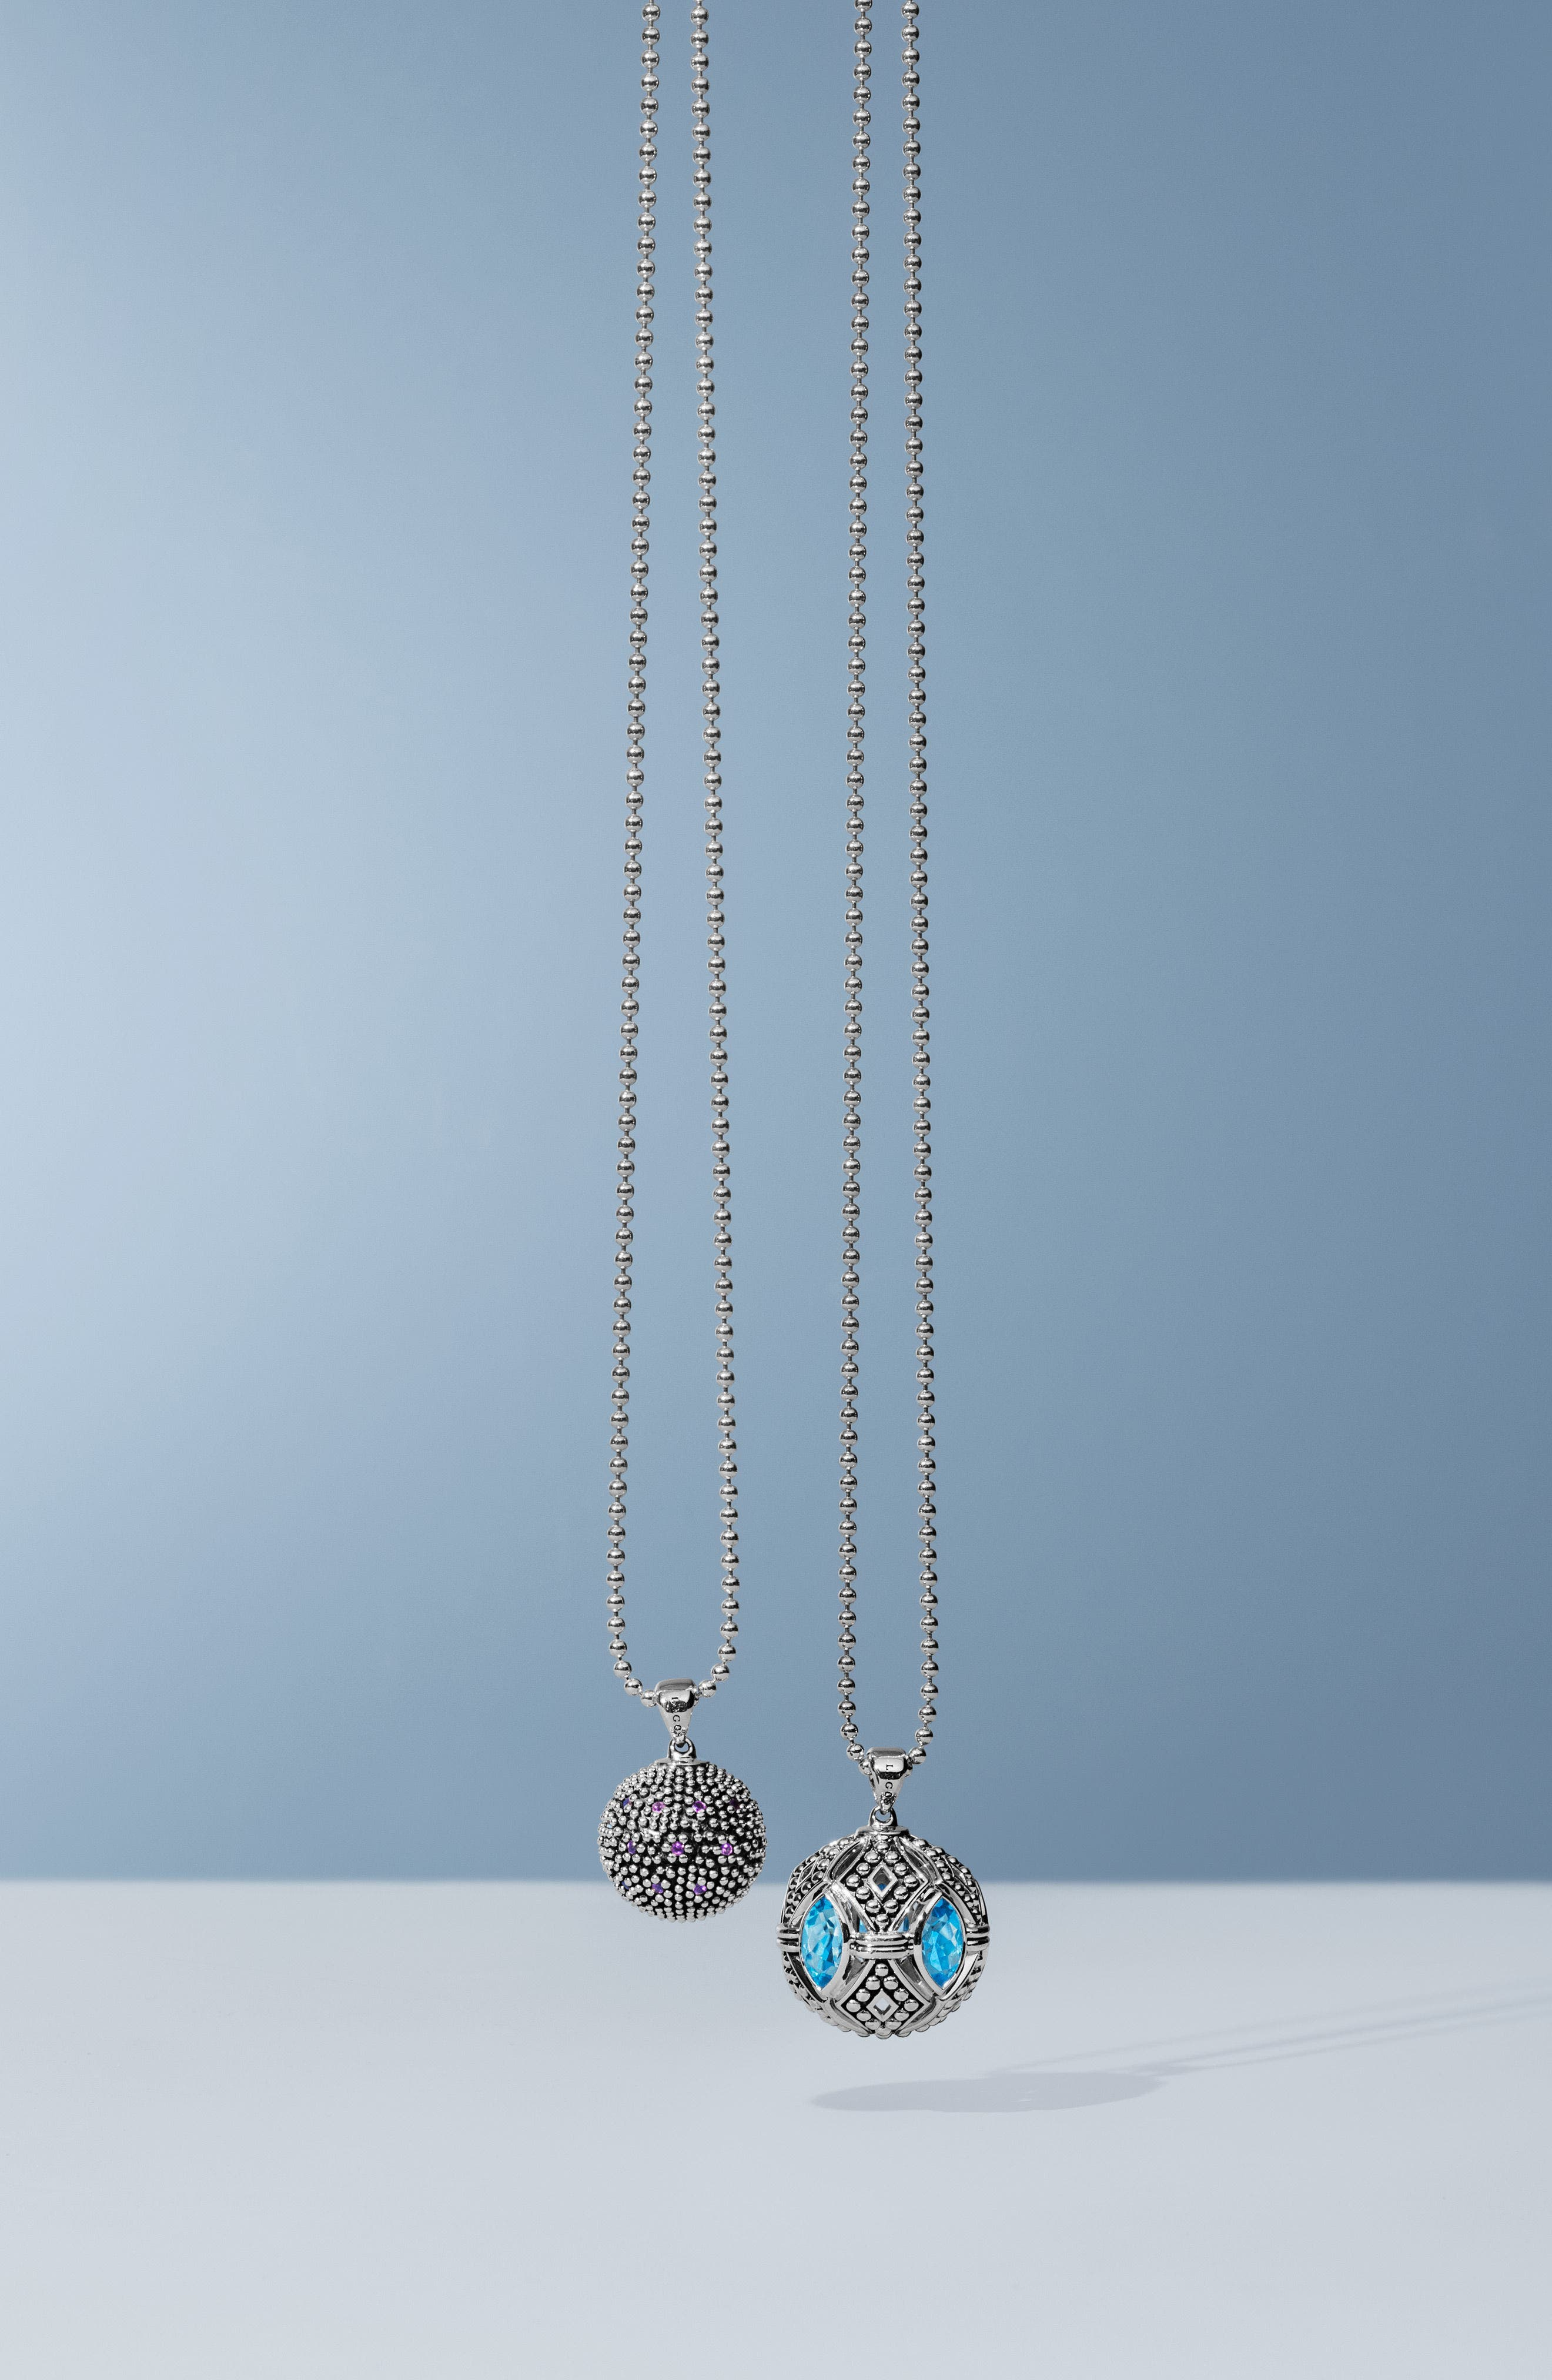 Signature Gifts Marquee Ball Pendant Necklace,                             Alternate thumbnail 6, color,                             SILVER/ BLUE TOPAZ